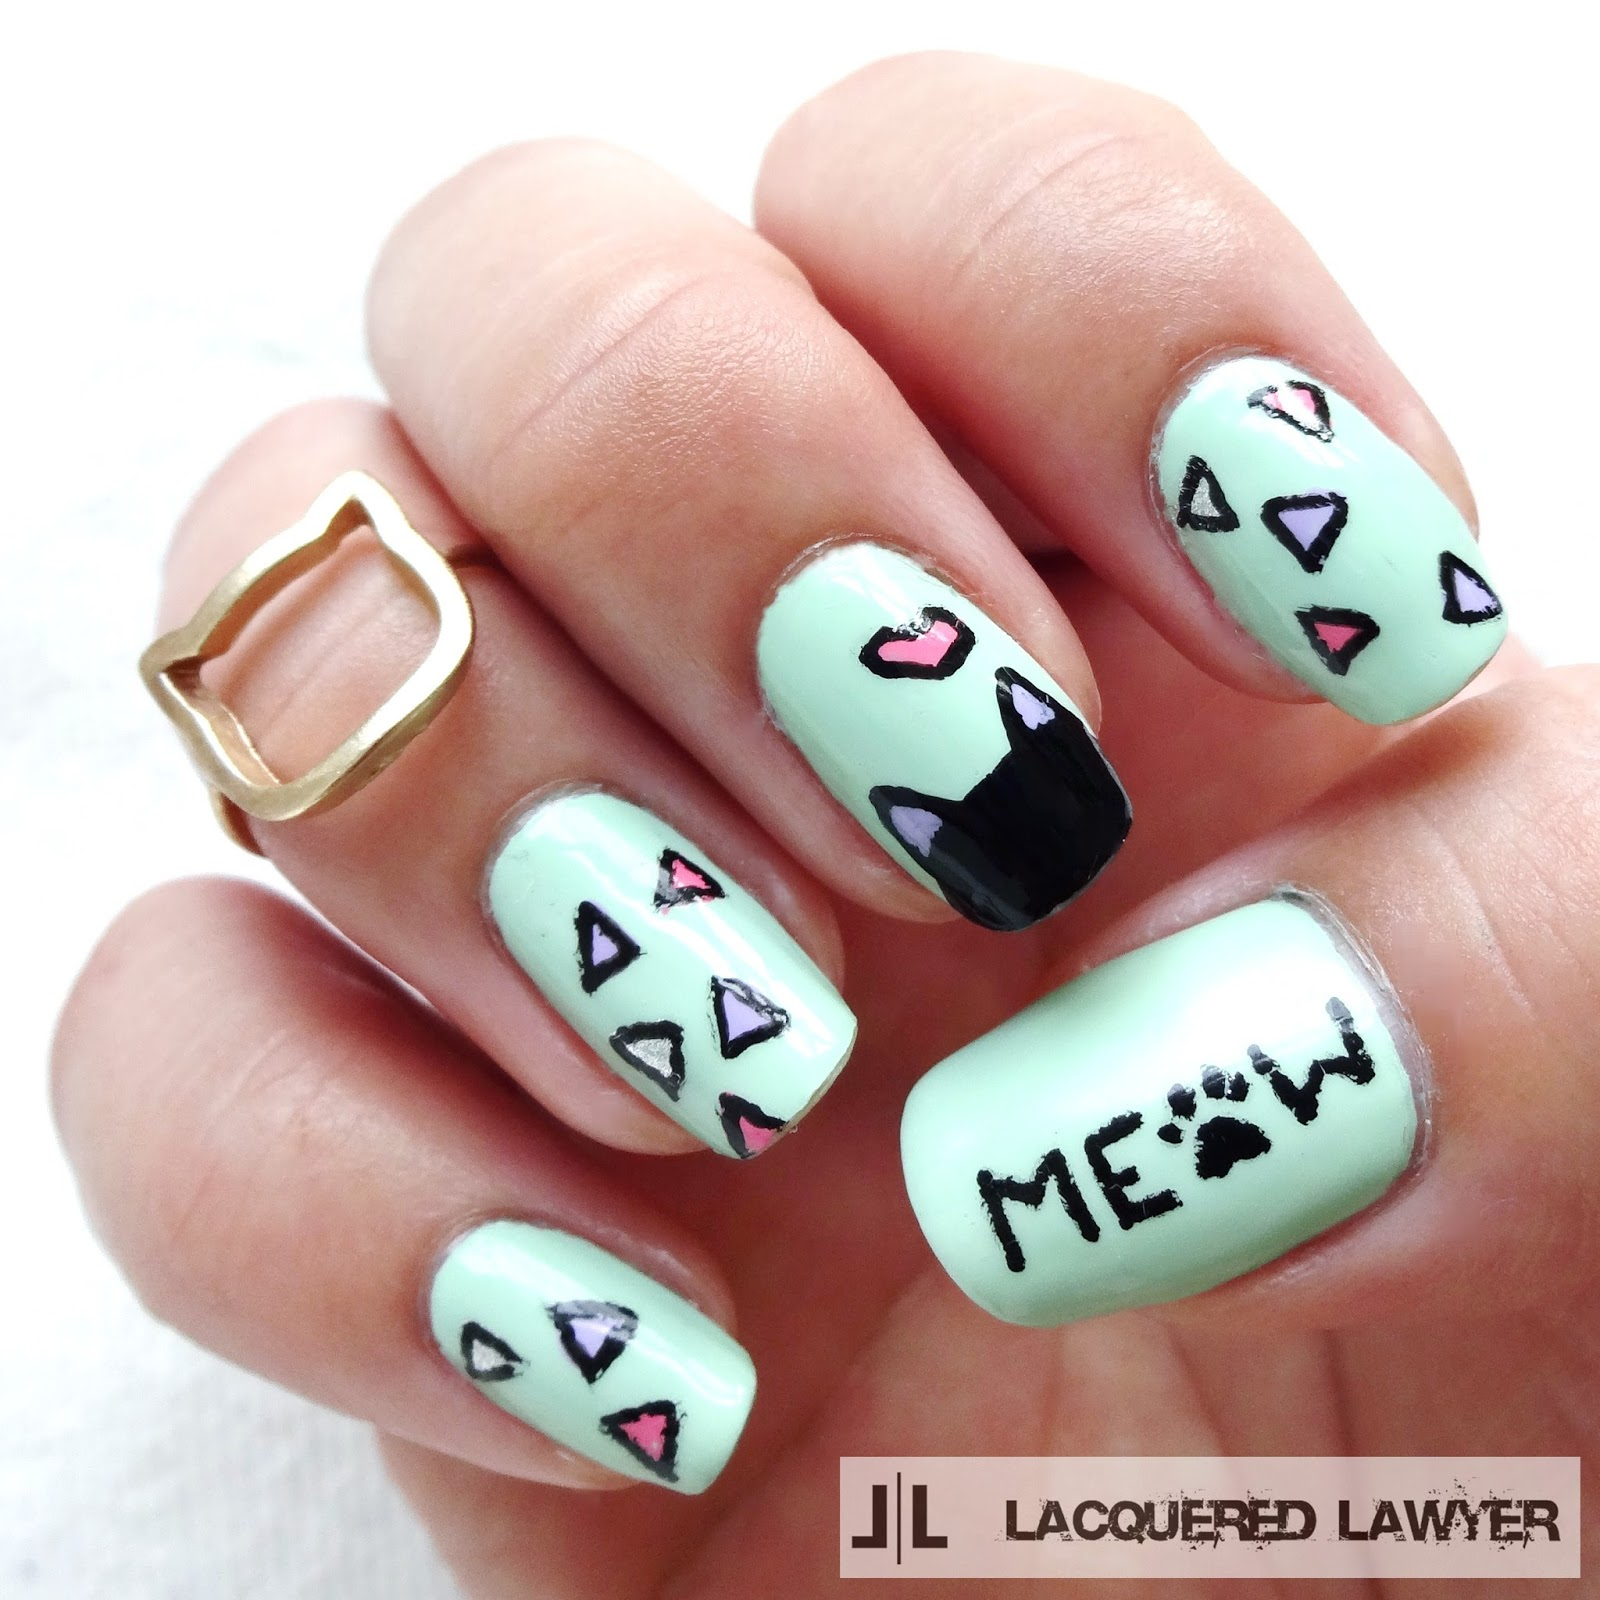 Lacquered Lawyer Nail Art Blog The Cats Meow